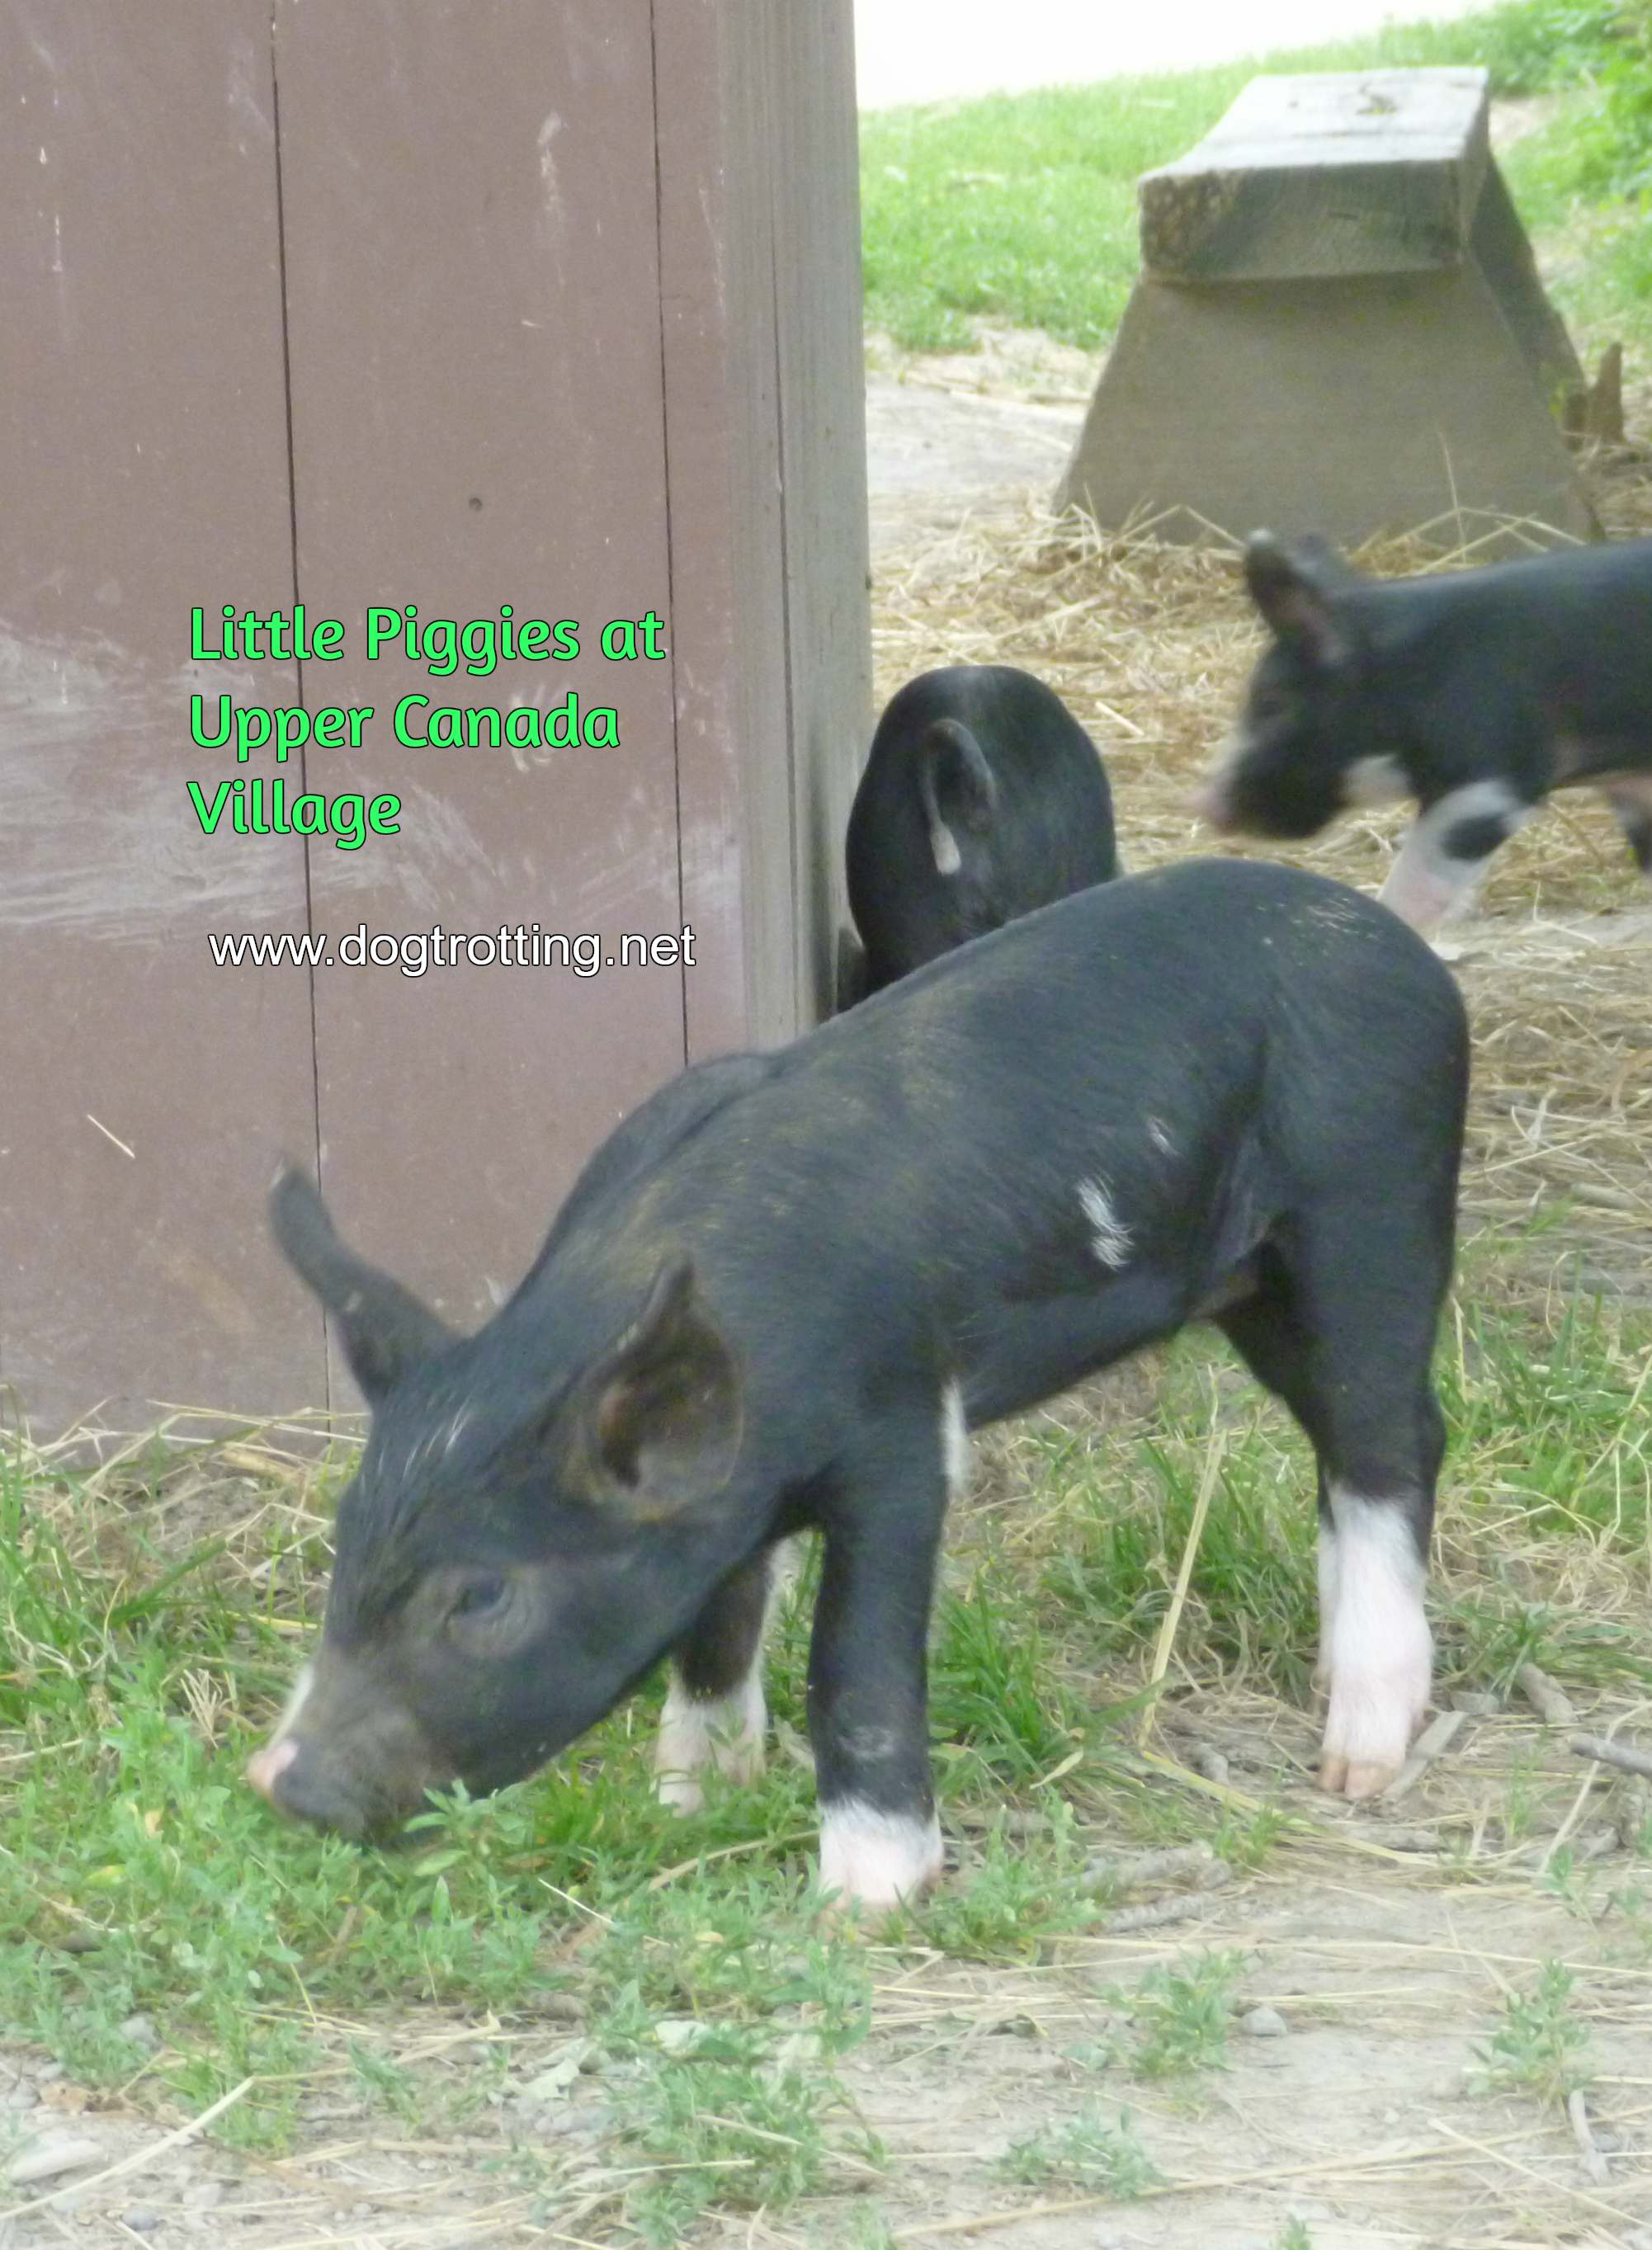 piggies at dog-friendly Upper Canada Village